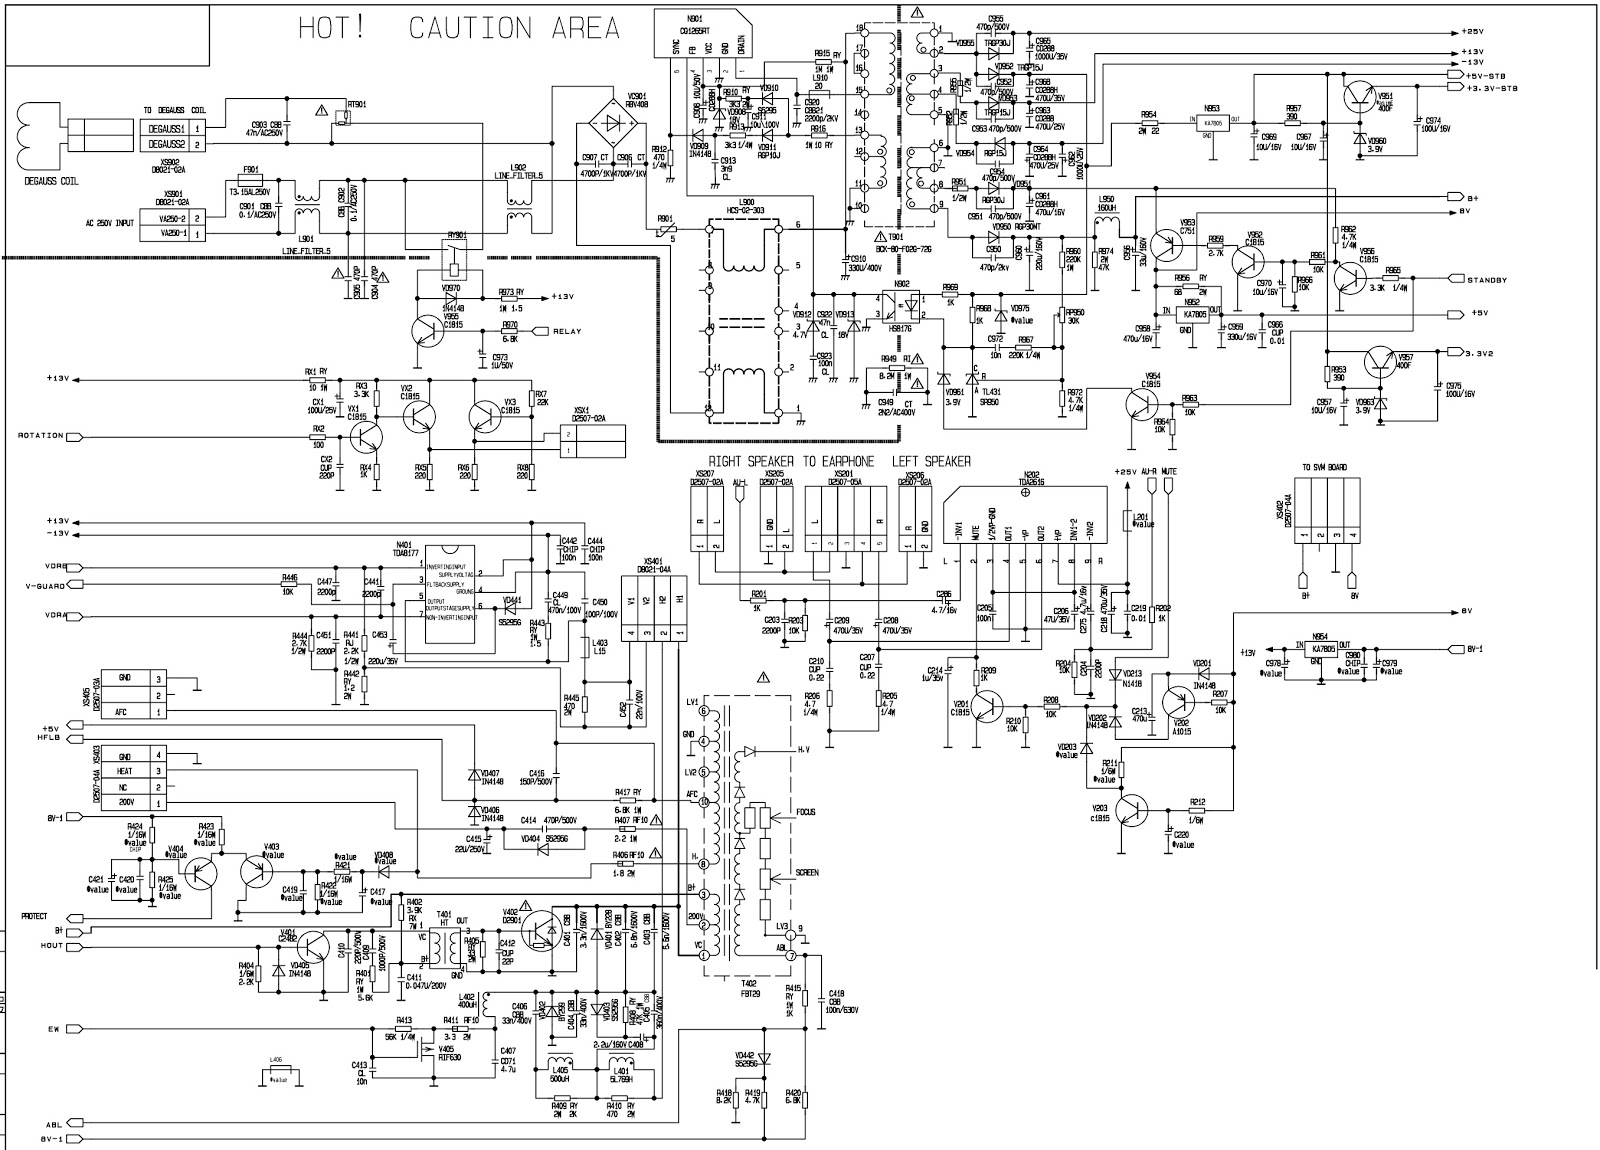 Schematic Circuit Diagram Str - Wiring Diagrams Show